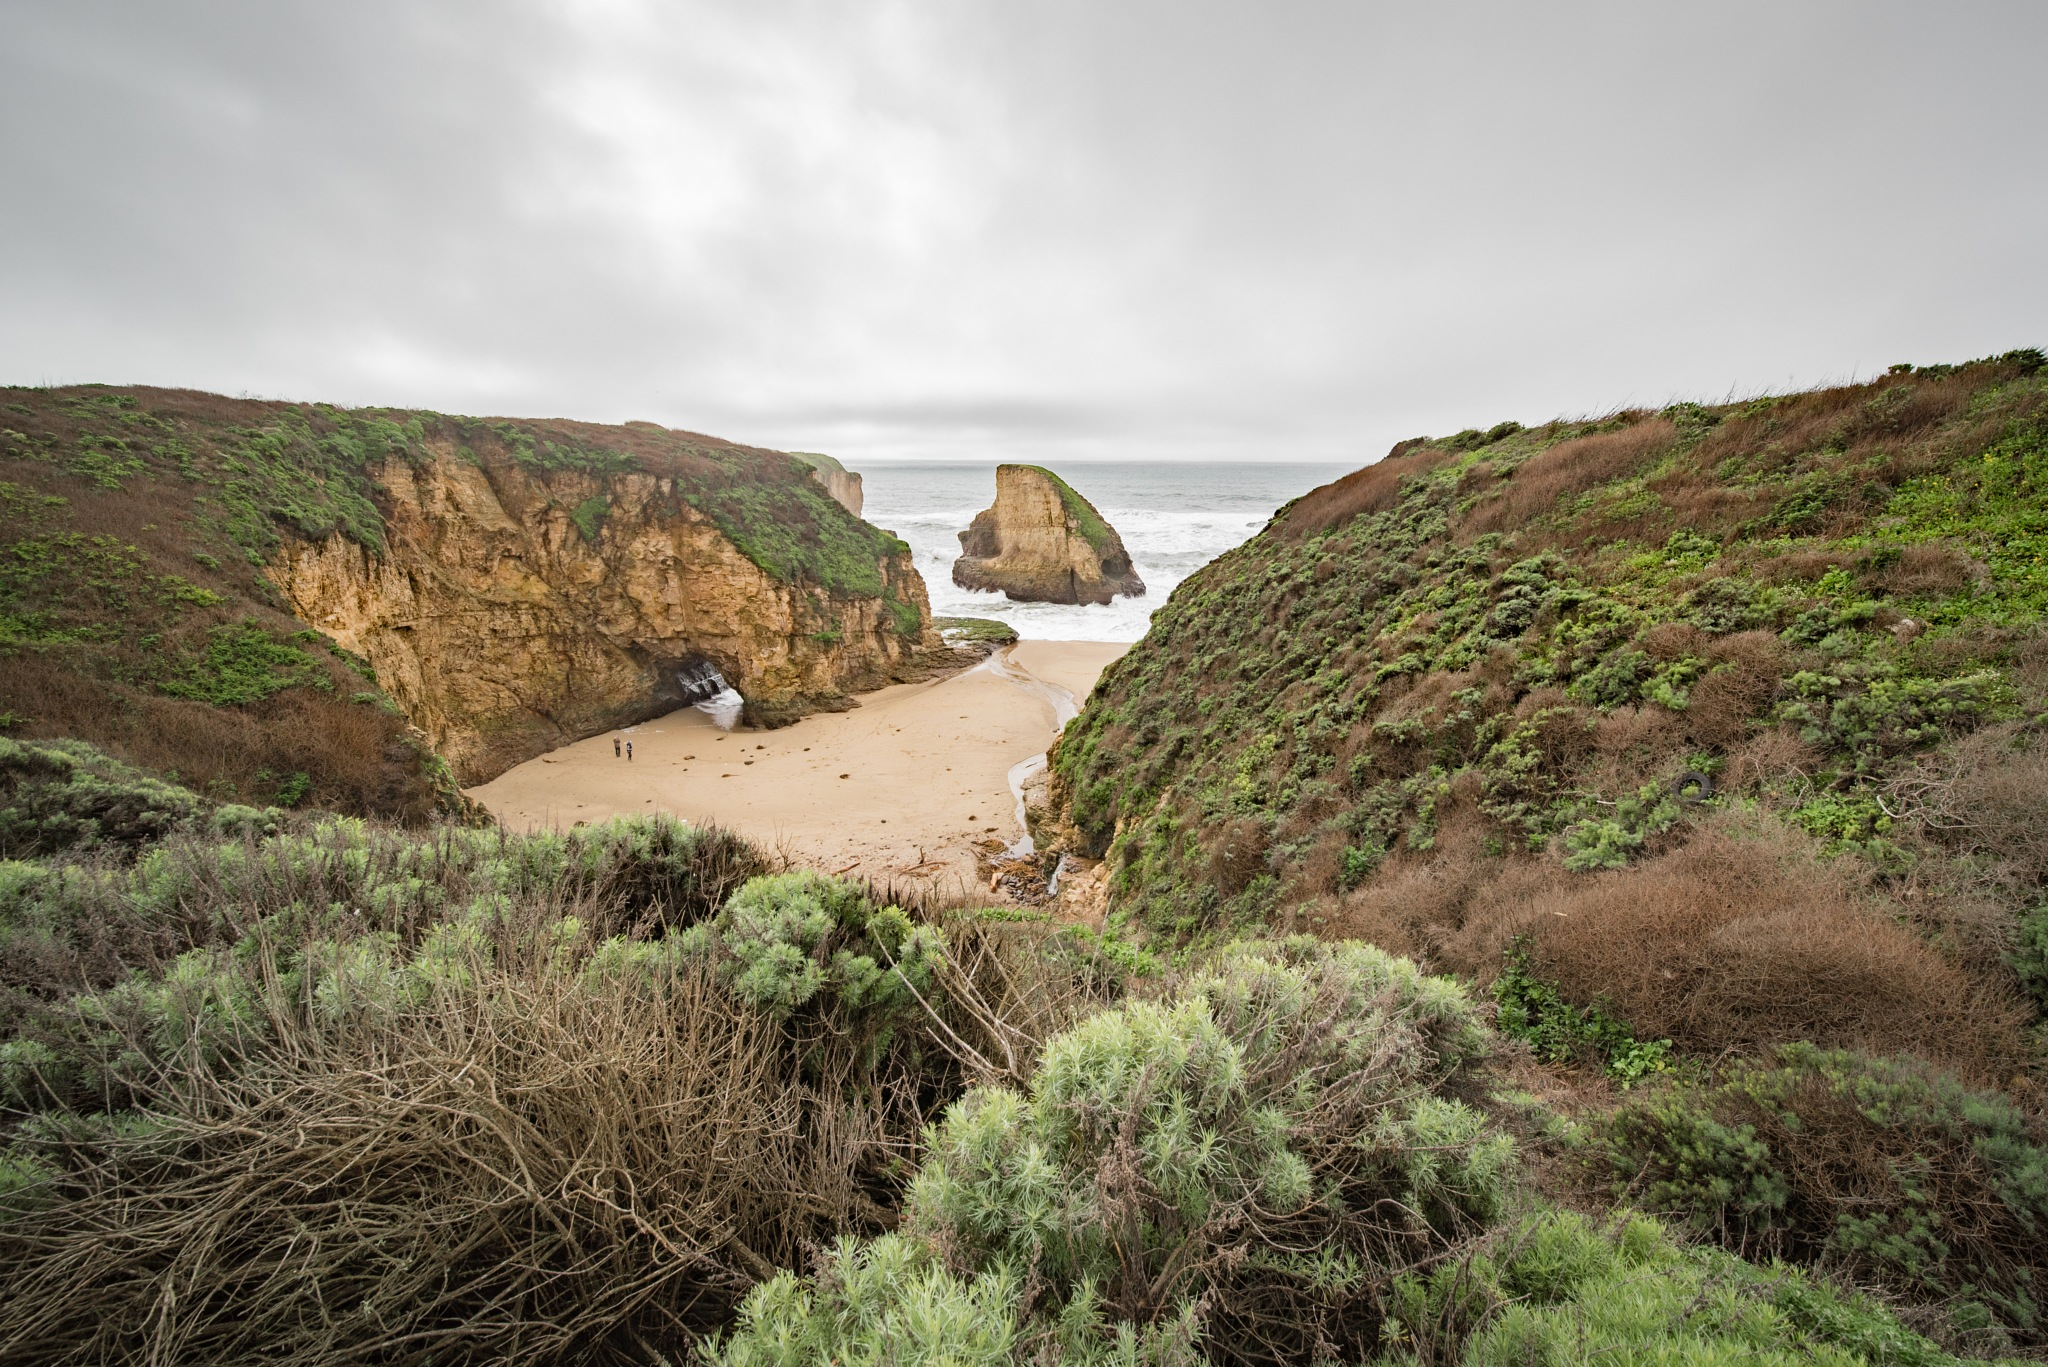 Gray Day at Shark Fin Cove by Kevin Drew Davis